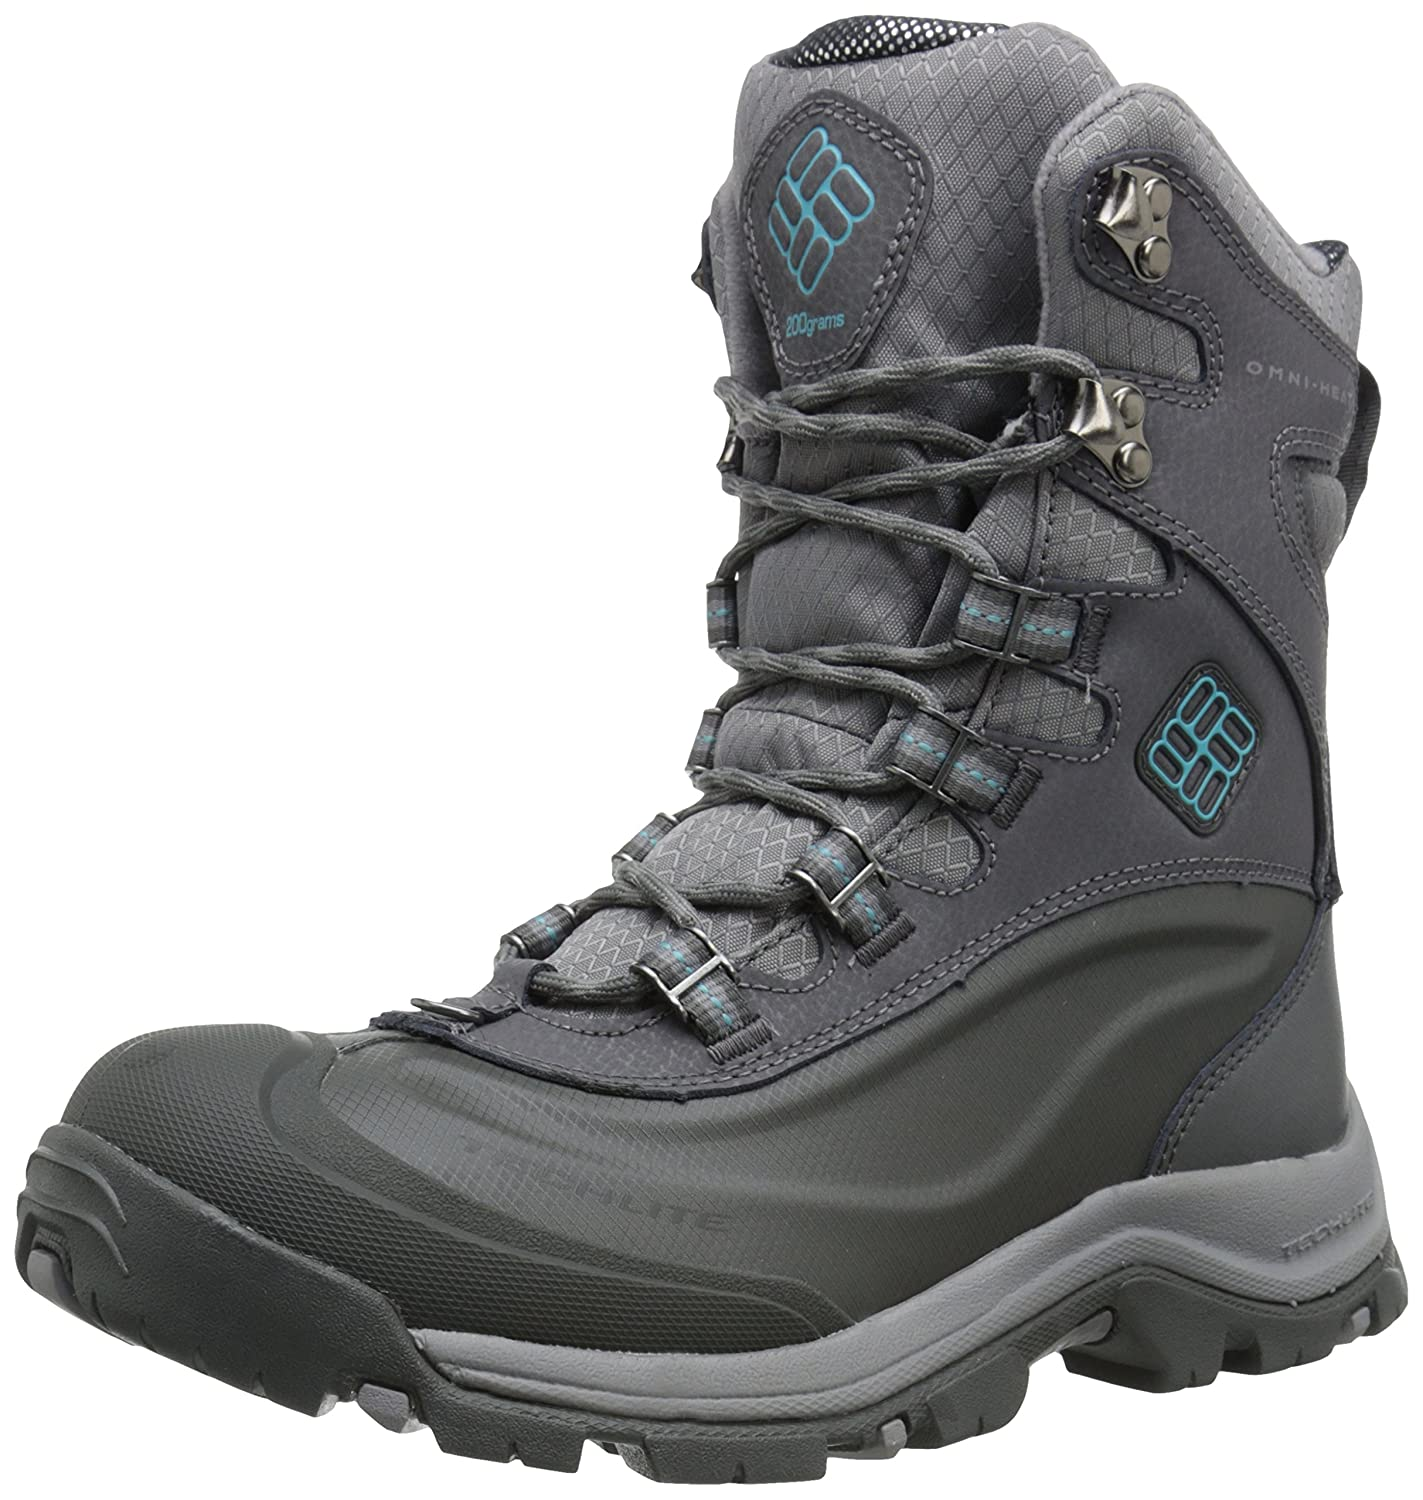 Columbia Women's Buga Plus III Omni Heat Boot B00Q7WNVO2 6 B(M) US|Shale/Aqua